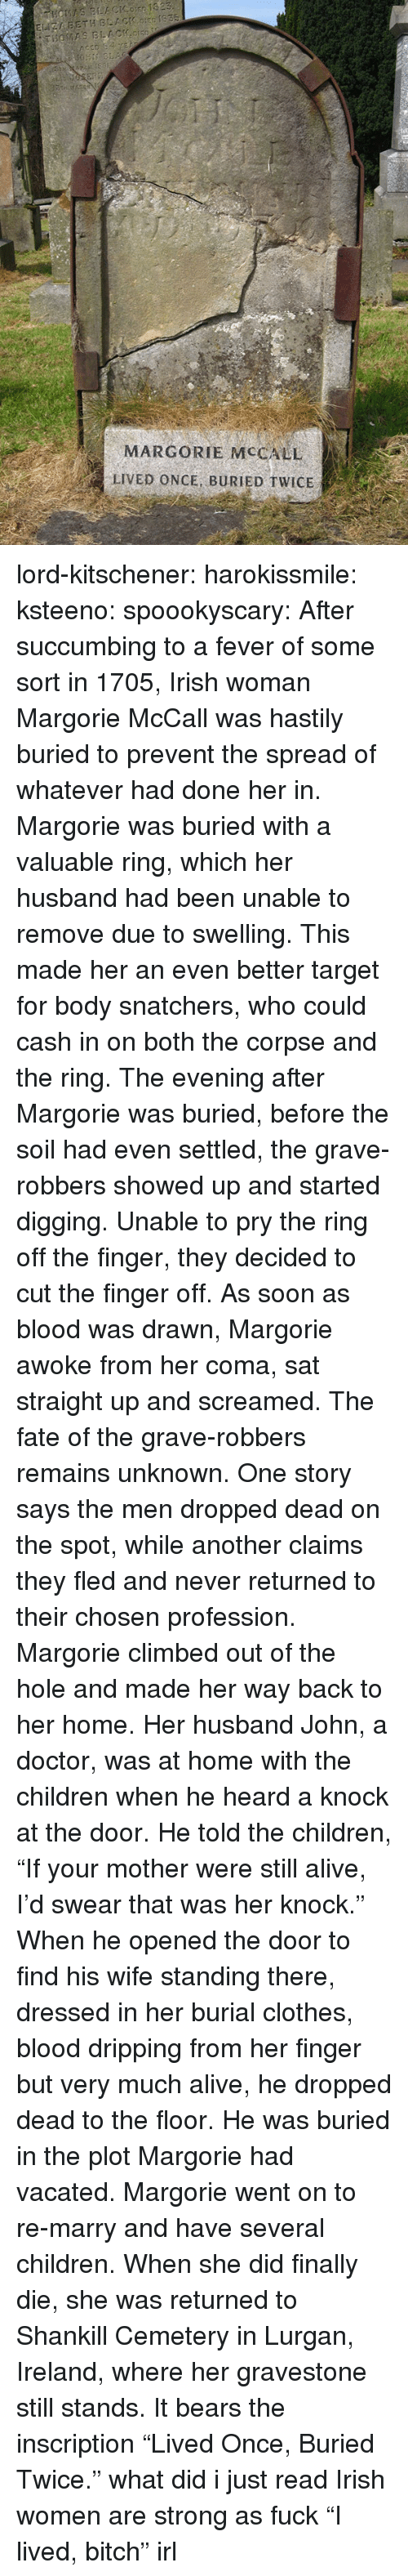 "profession: MARGORIE MCCALL  LIVED ONCE, BURIED TWICE lord-kitschener: harokissmile:  ksteeno:  spoookyscary:  After succumbing to a fever of some sort in 1705, Irish woman Margorie McCall was hastily buried to prevent the spread of whatever had done her in. Margorie was buried with a valuable ring, which her husband had been unable to remove due to swelling. This made her an even better target for body snatchers, who could cash in on both the corpse and the ring. The evening after Margorie was buried, before the soil had even settled, the grave-robbers showed up and started digging. Unable to pry the ring off the finger, they decided to cut the finger off. As soon as blood was drawn, Margorie awoke from her coma, sat straight up and screamed. The fate of the grave-robbers remains unknown. One story says the men dropped dead on the spot, while another claims they fled and never returned to their chosen profession. Margorie climbed out of the hole and made her way back to her home. Her husband John, a doctor, was at home with the children when he heard a knock at the door. He told the children, ""If your mother were still alive, I'd swear that was her knock."" When he opened the door to find his wife standing there, dressed in her burial clothes, blood dripping from her finger but very much alive, he dropped dead to the floor. He was buried in the plot Margorie had vacated. Margorie went on to re-marry and have several children. When she did finally die, she was returned to Shankill Cemetery in Lurgan, Ireland, where her gravestone still stands. It bears the inscription ""Lived Once, Buried Twice.""  what did i just read  Irish women are strong as fuck   ""I lived, bitch"" irl"